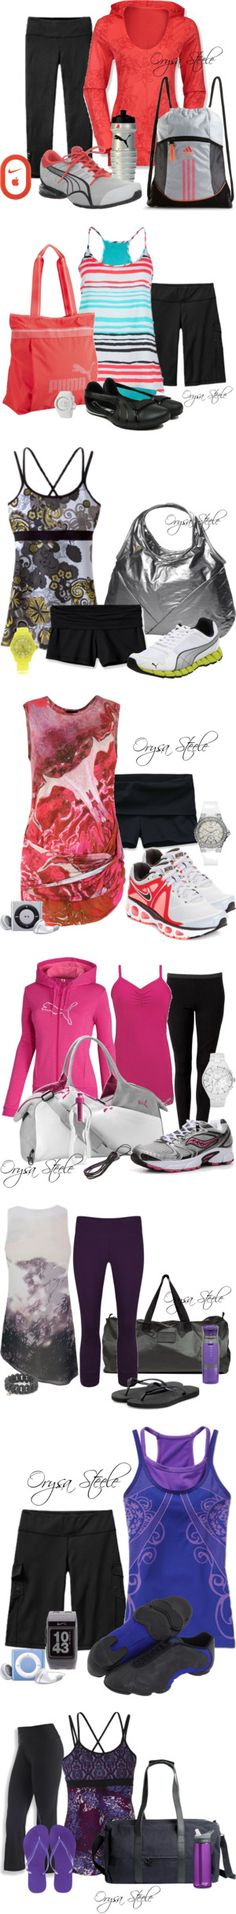 """Fitness"" by orysa on Polyvore"